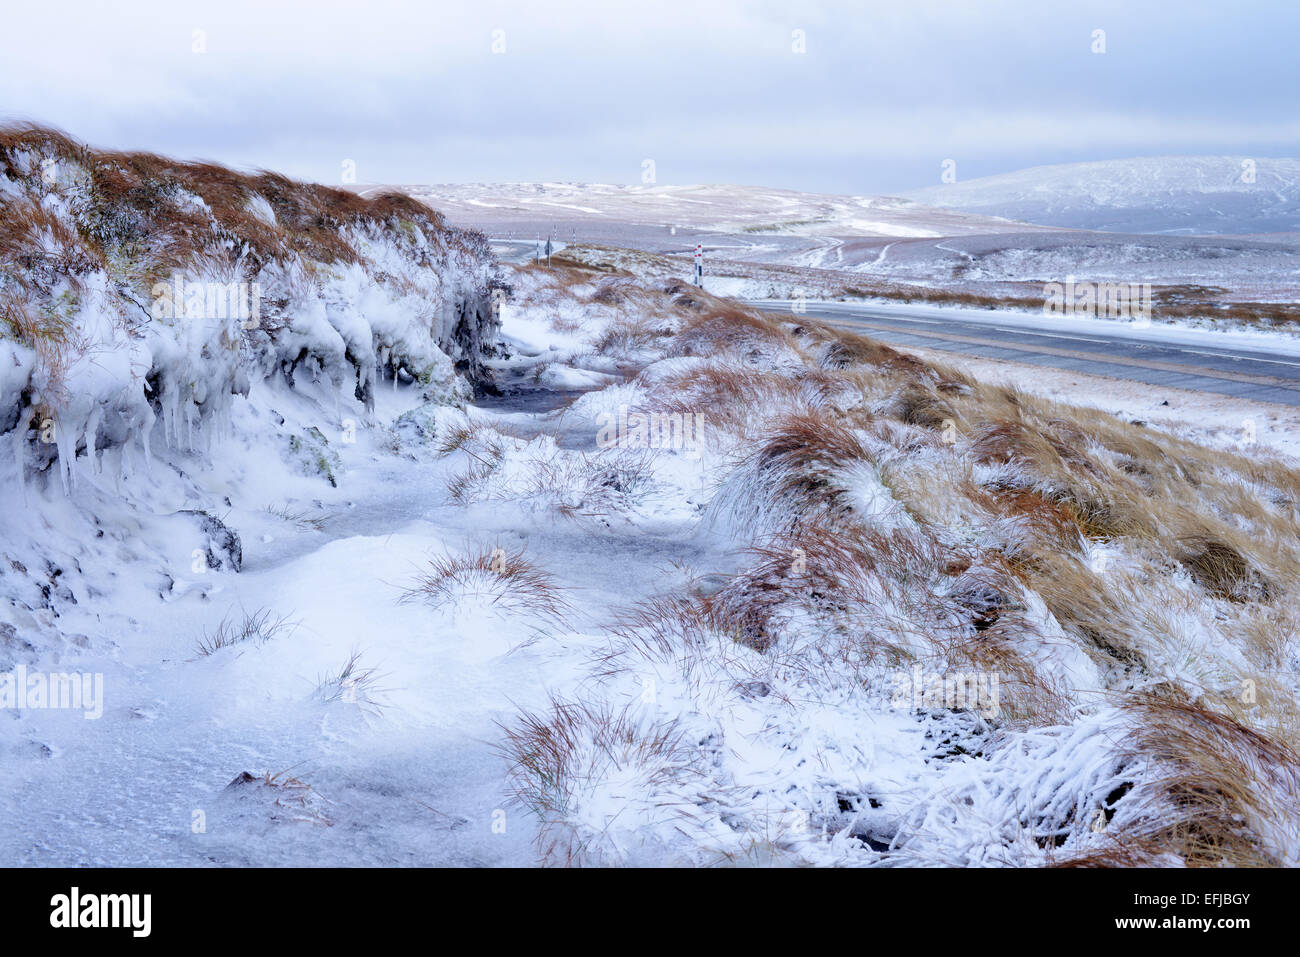 Upper Teesdale in Snow. - Stock Image